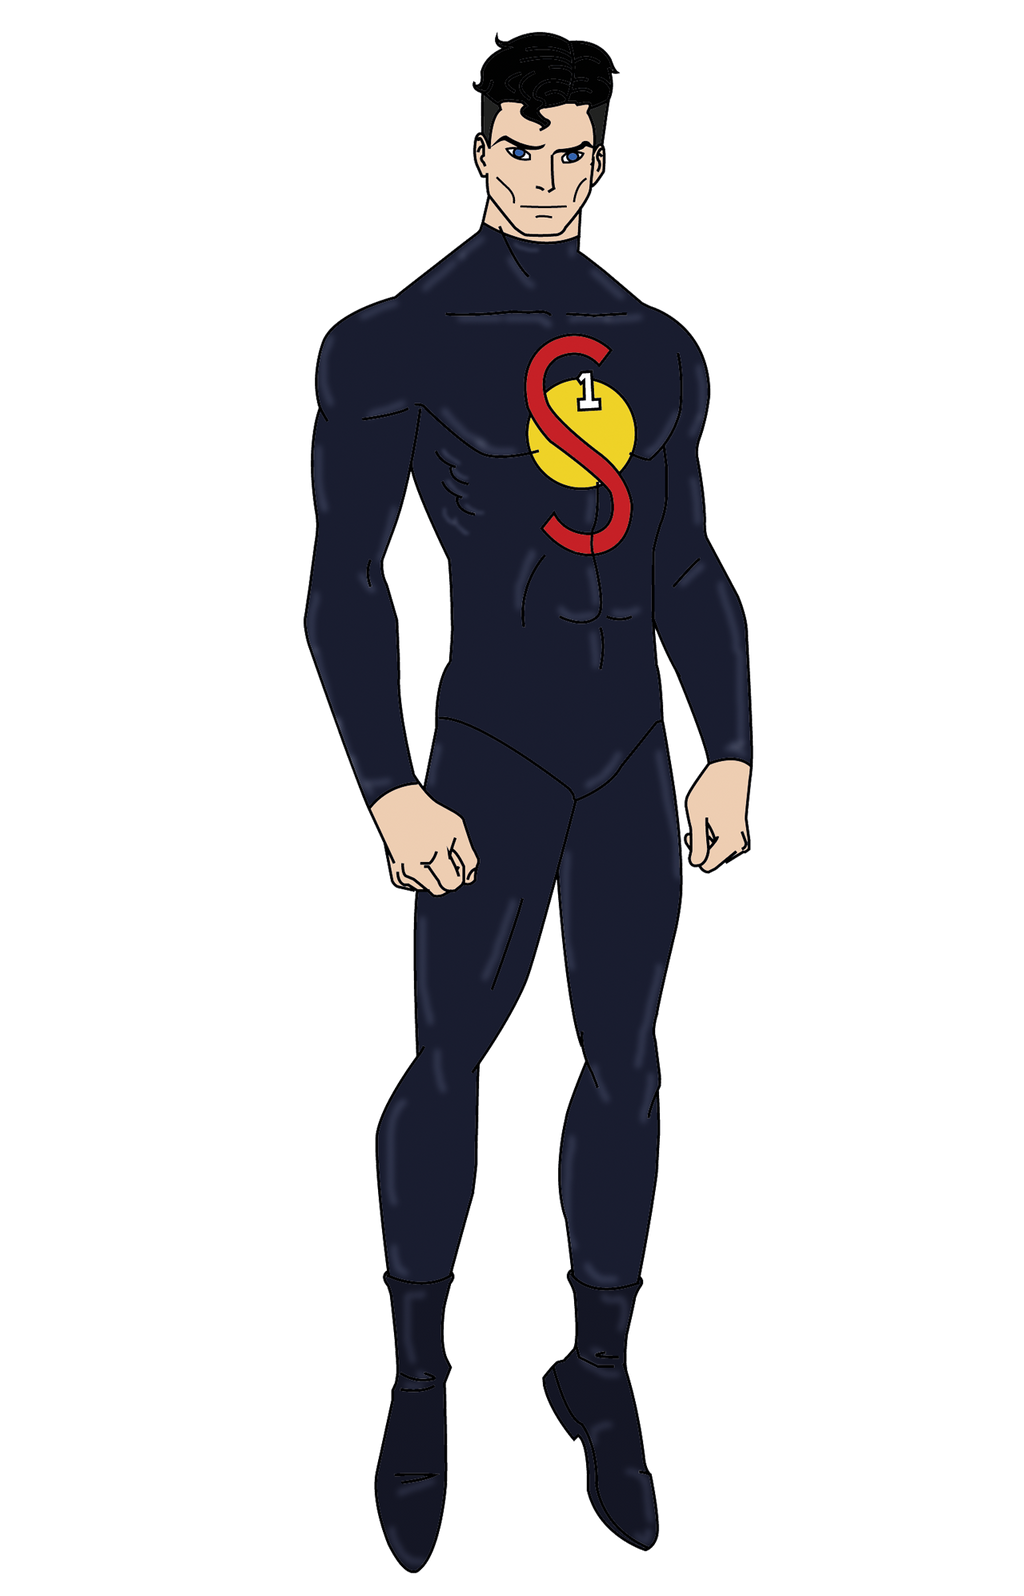 Flashpoint-Project Superman by marktreseh on DeviantArt